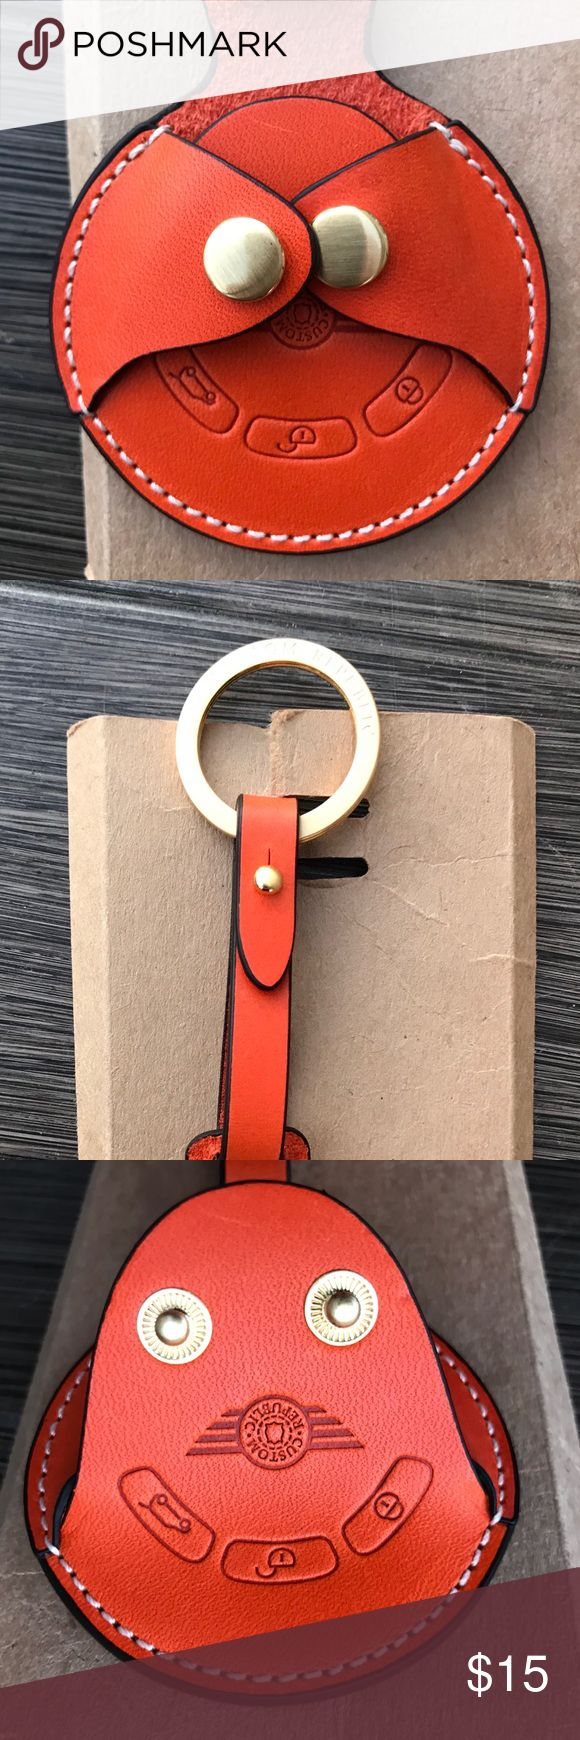 BMW Mini Cooper Key Fob Cover  NWOT Orange leather Mini Cooper key fob cover / for 2007-2014 model Mini Cooper key fobs. This is brand new with original packaging. No tags came with this. I didn't use because I ordered a cover for the wrong model....I have a 2016 model. Love the color of this and the leather is beautiful & sturdy. Mini Cooper Accessories